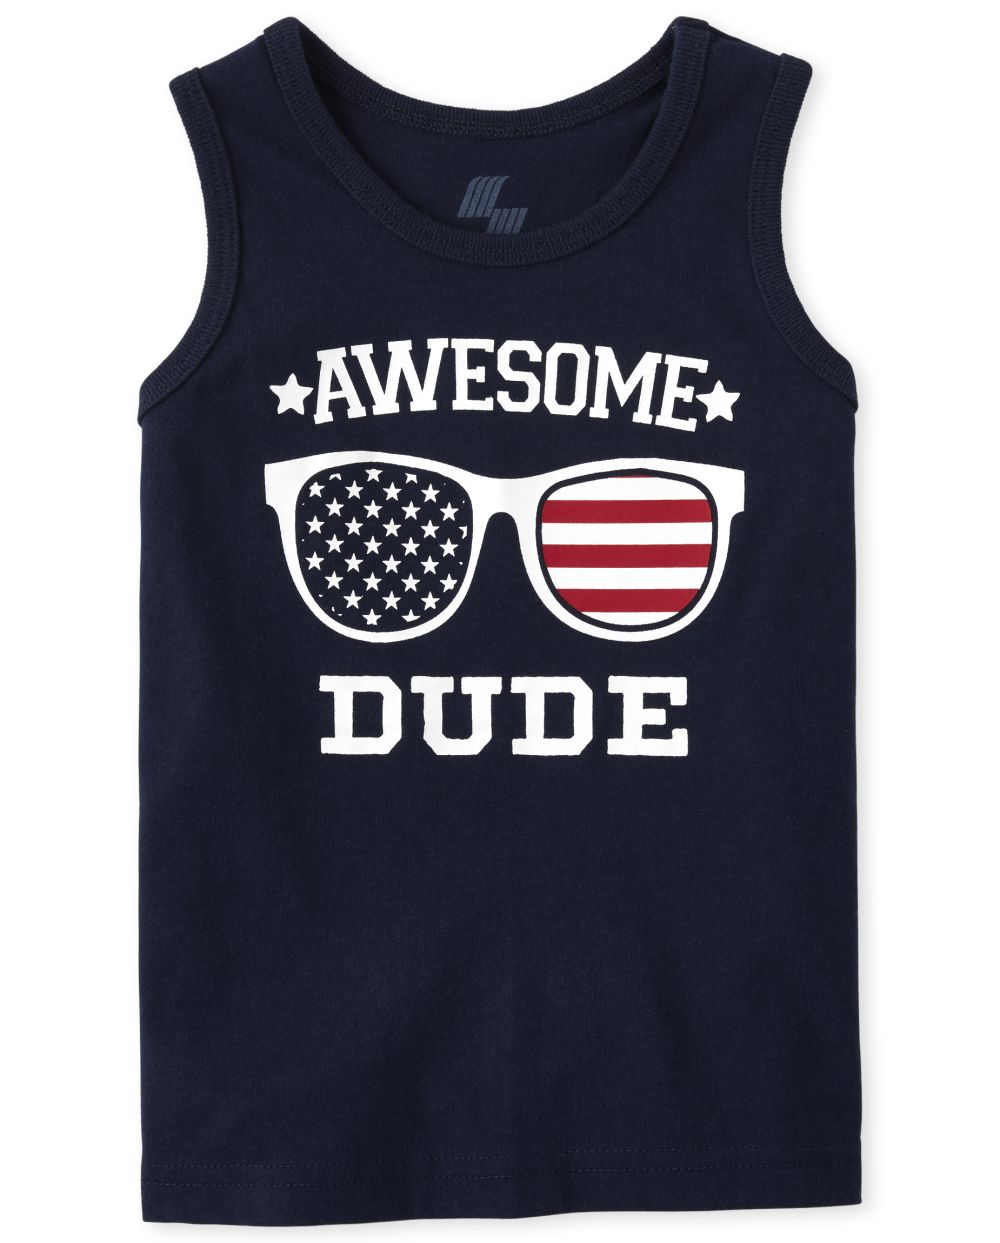 Baby And Toddler Boys Americana Mix And Match Awesome Flag Tank Top